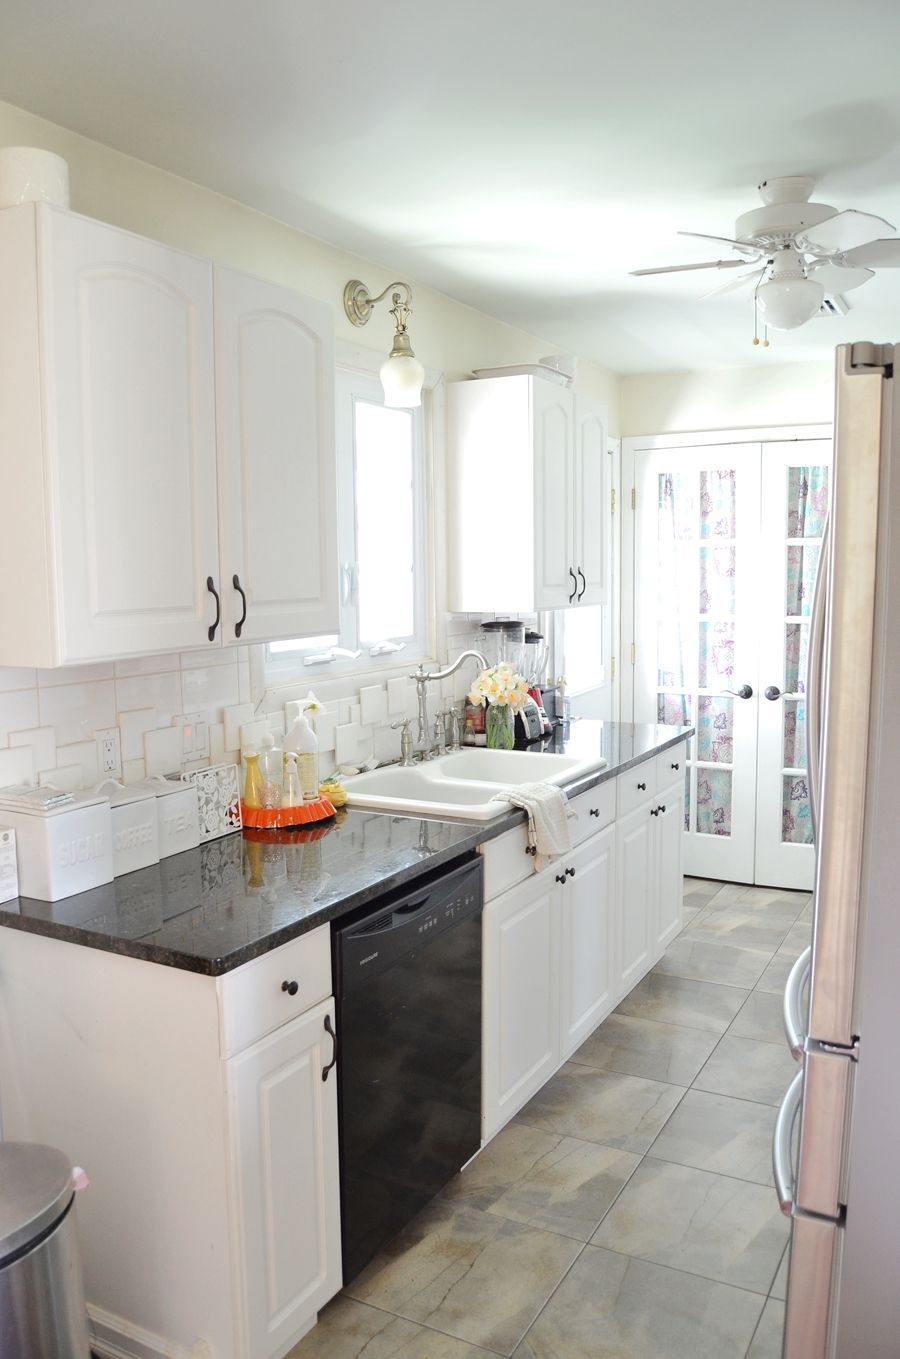 Why I Did Not Want To Open This Kitchen Up When We Changed Up The Look This Is The Galley Kitchen Design Galley Kitchen Remodel Small Galley Kitchen Designs